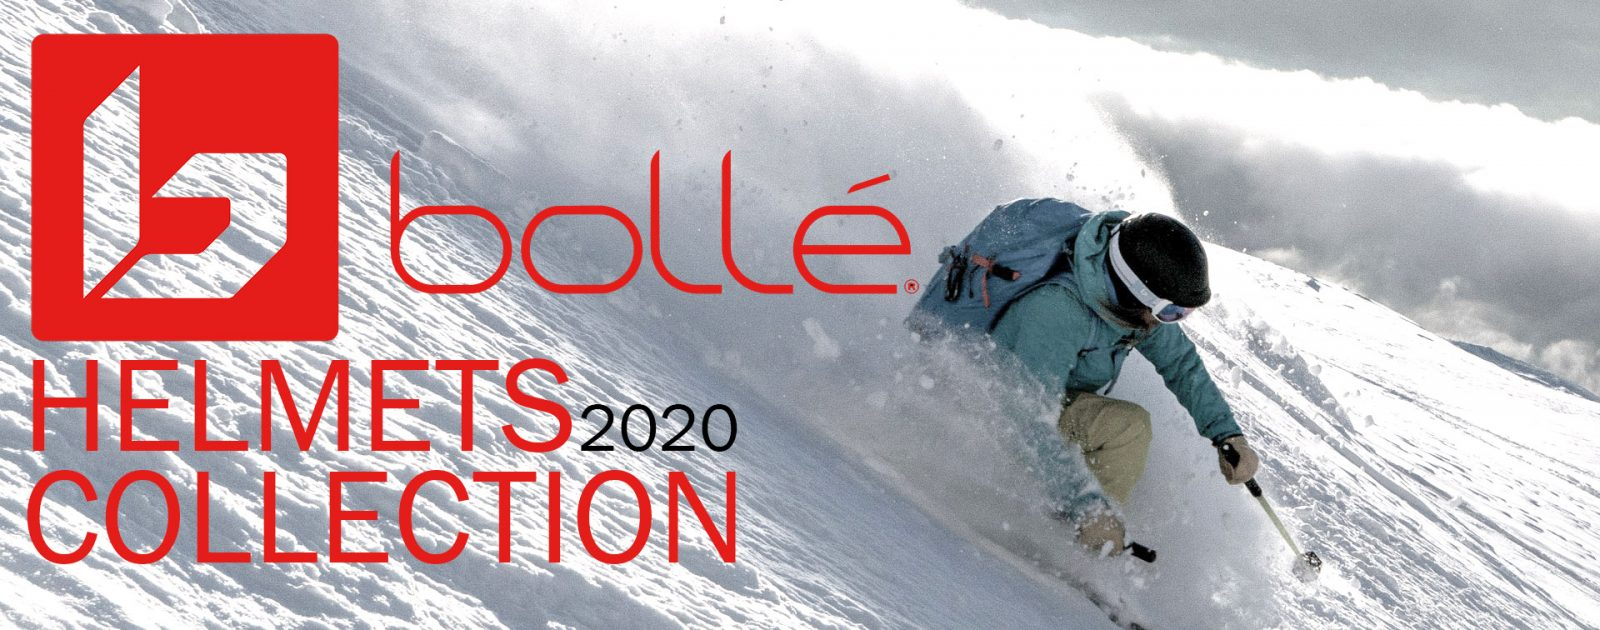 BOLLE HELMETS 2020 COLLECTION